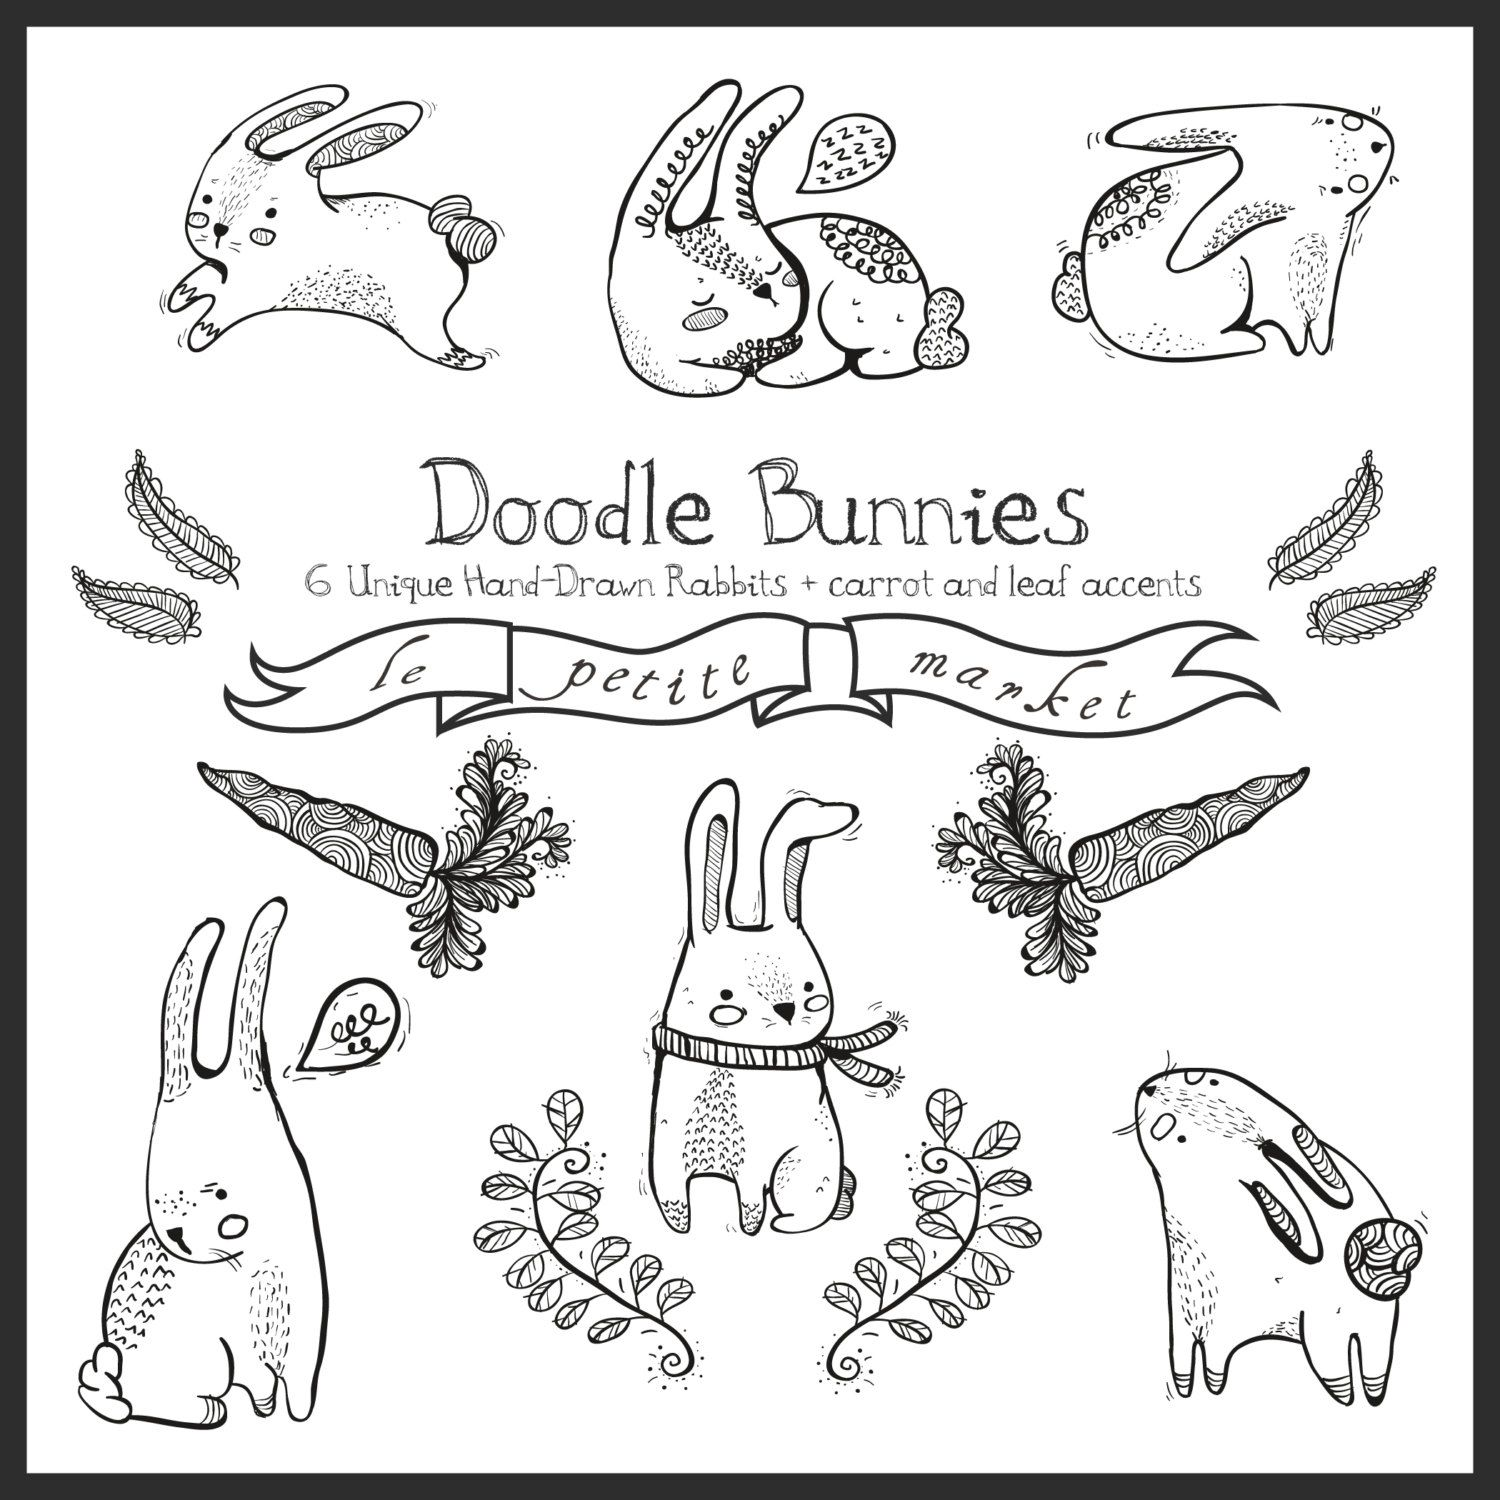 Doodly Cute Bunny Graphics Digital Rabbits And Digital Bunnies Hand Drawn Clipart Instant